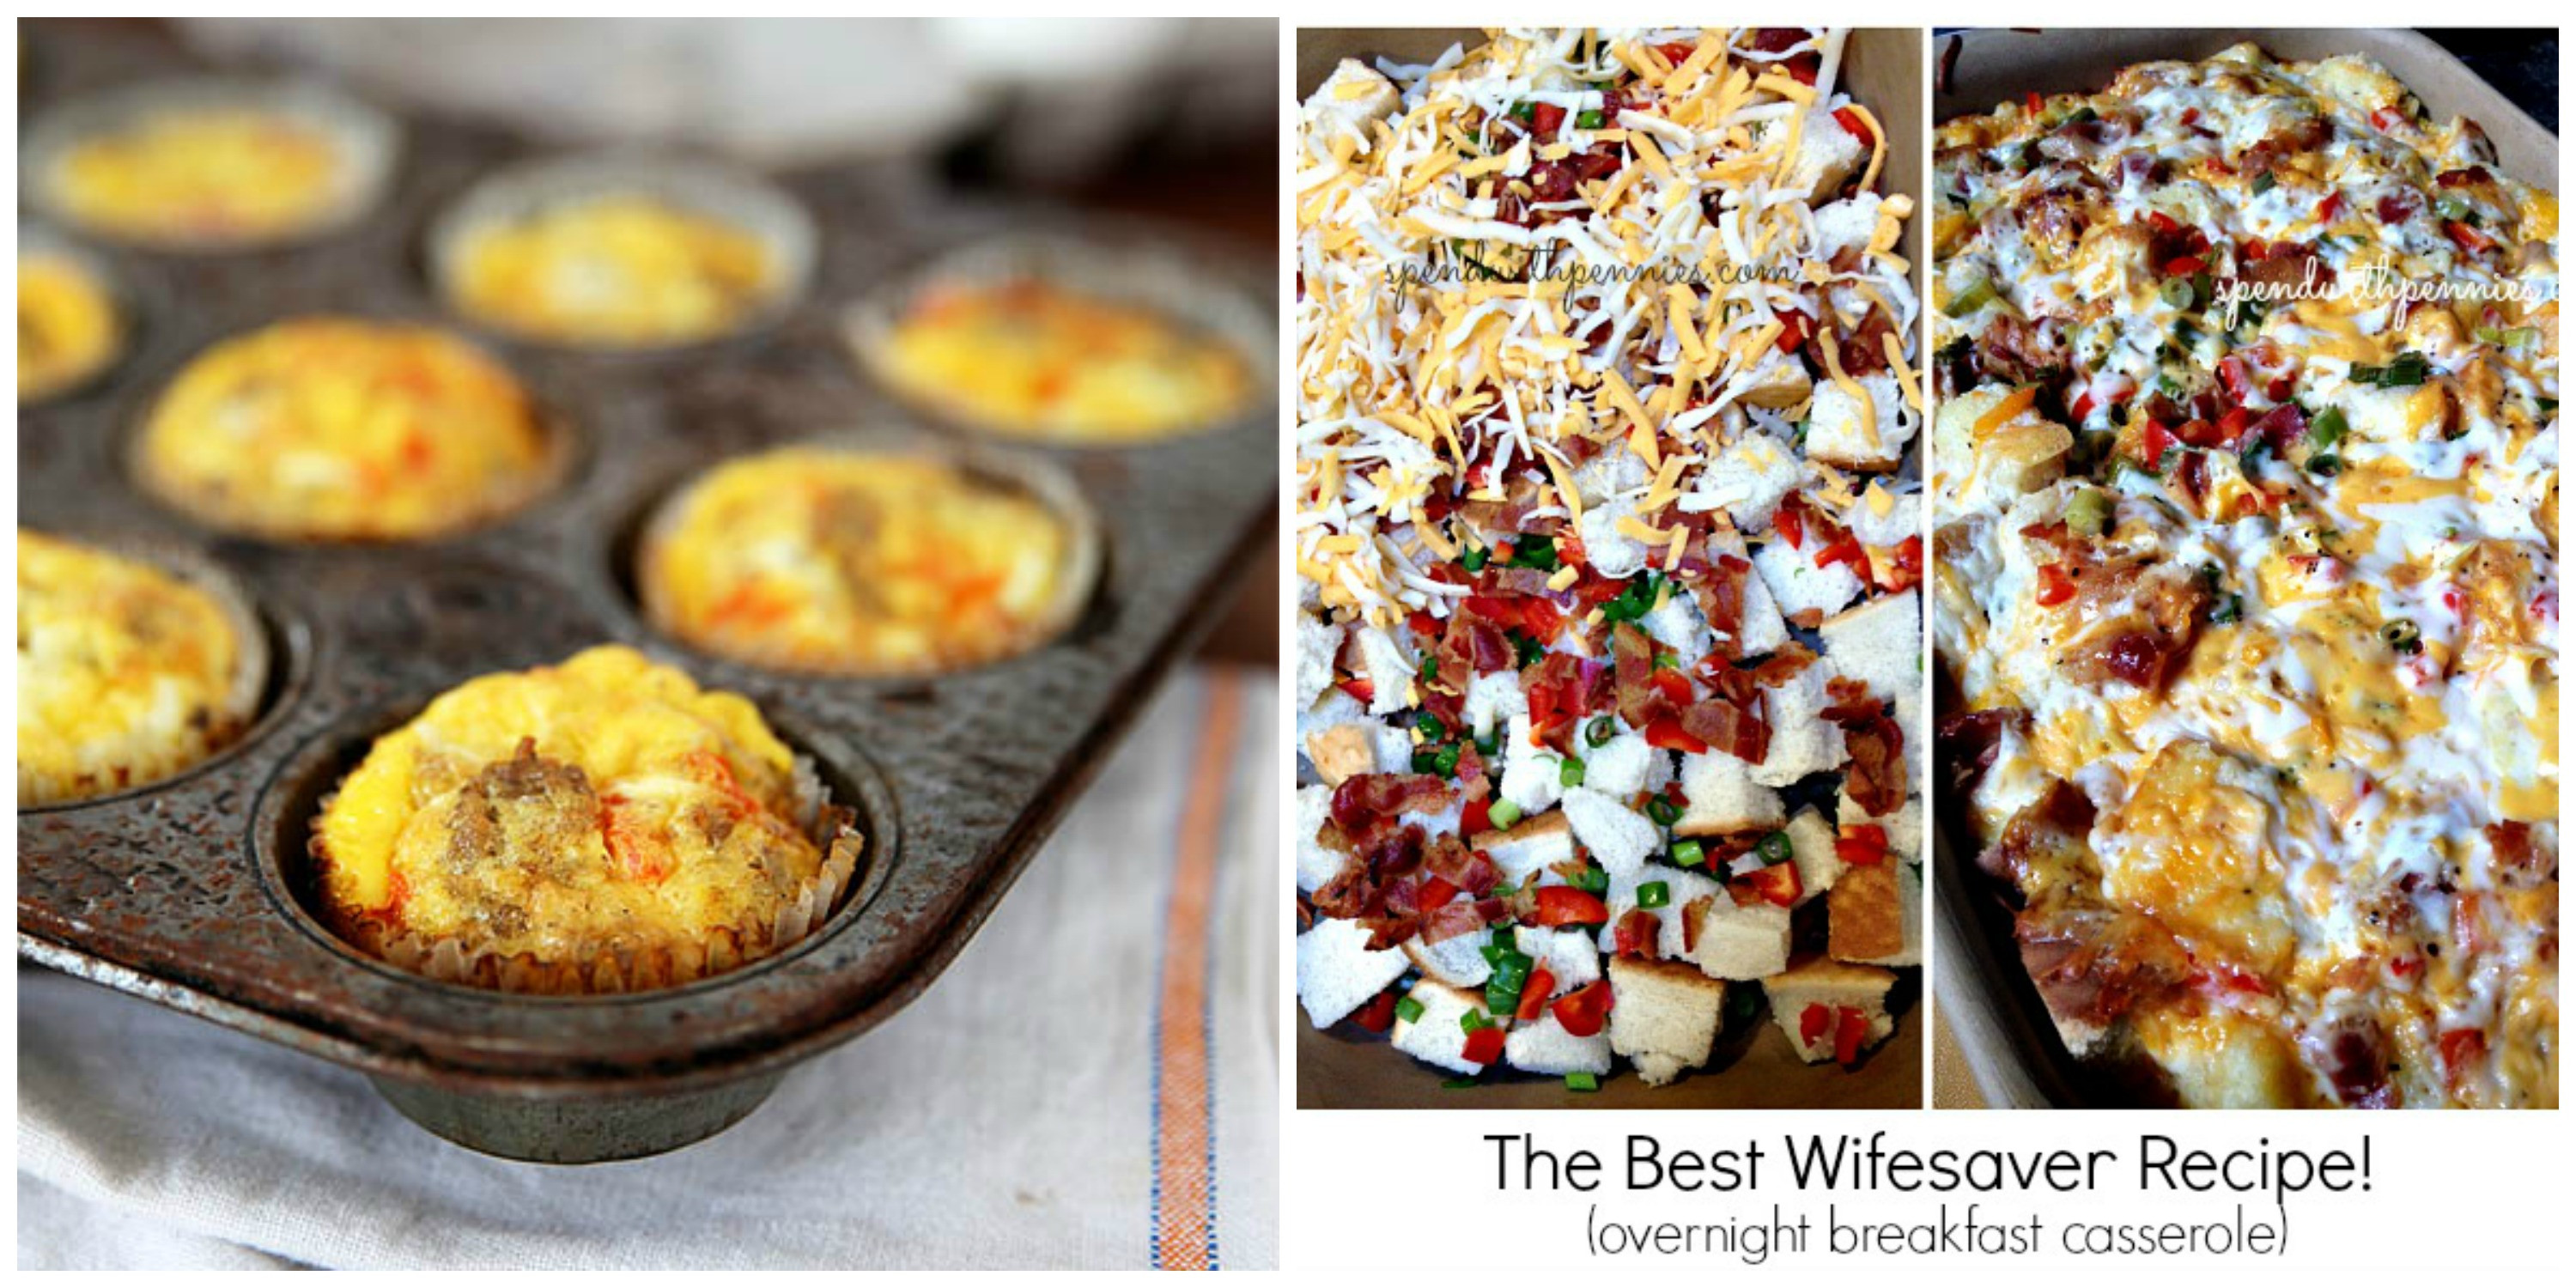 Make Ahead Breakfast Recipes To Freeze  16 Amazing Make Ahead Breakfast Recipes